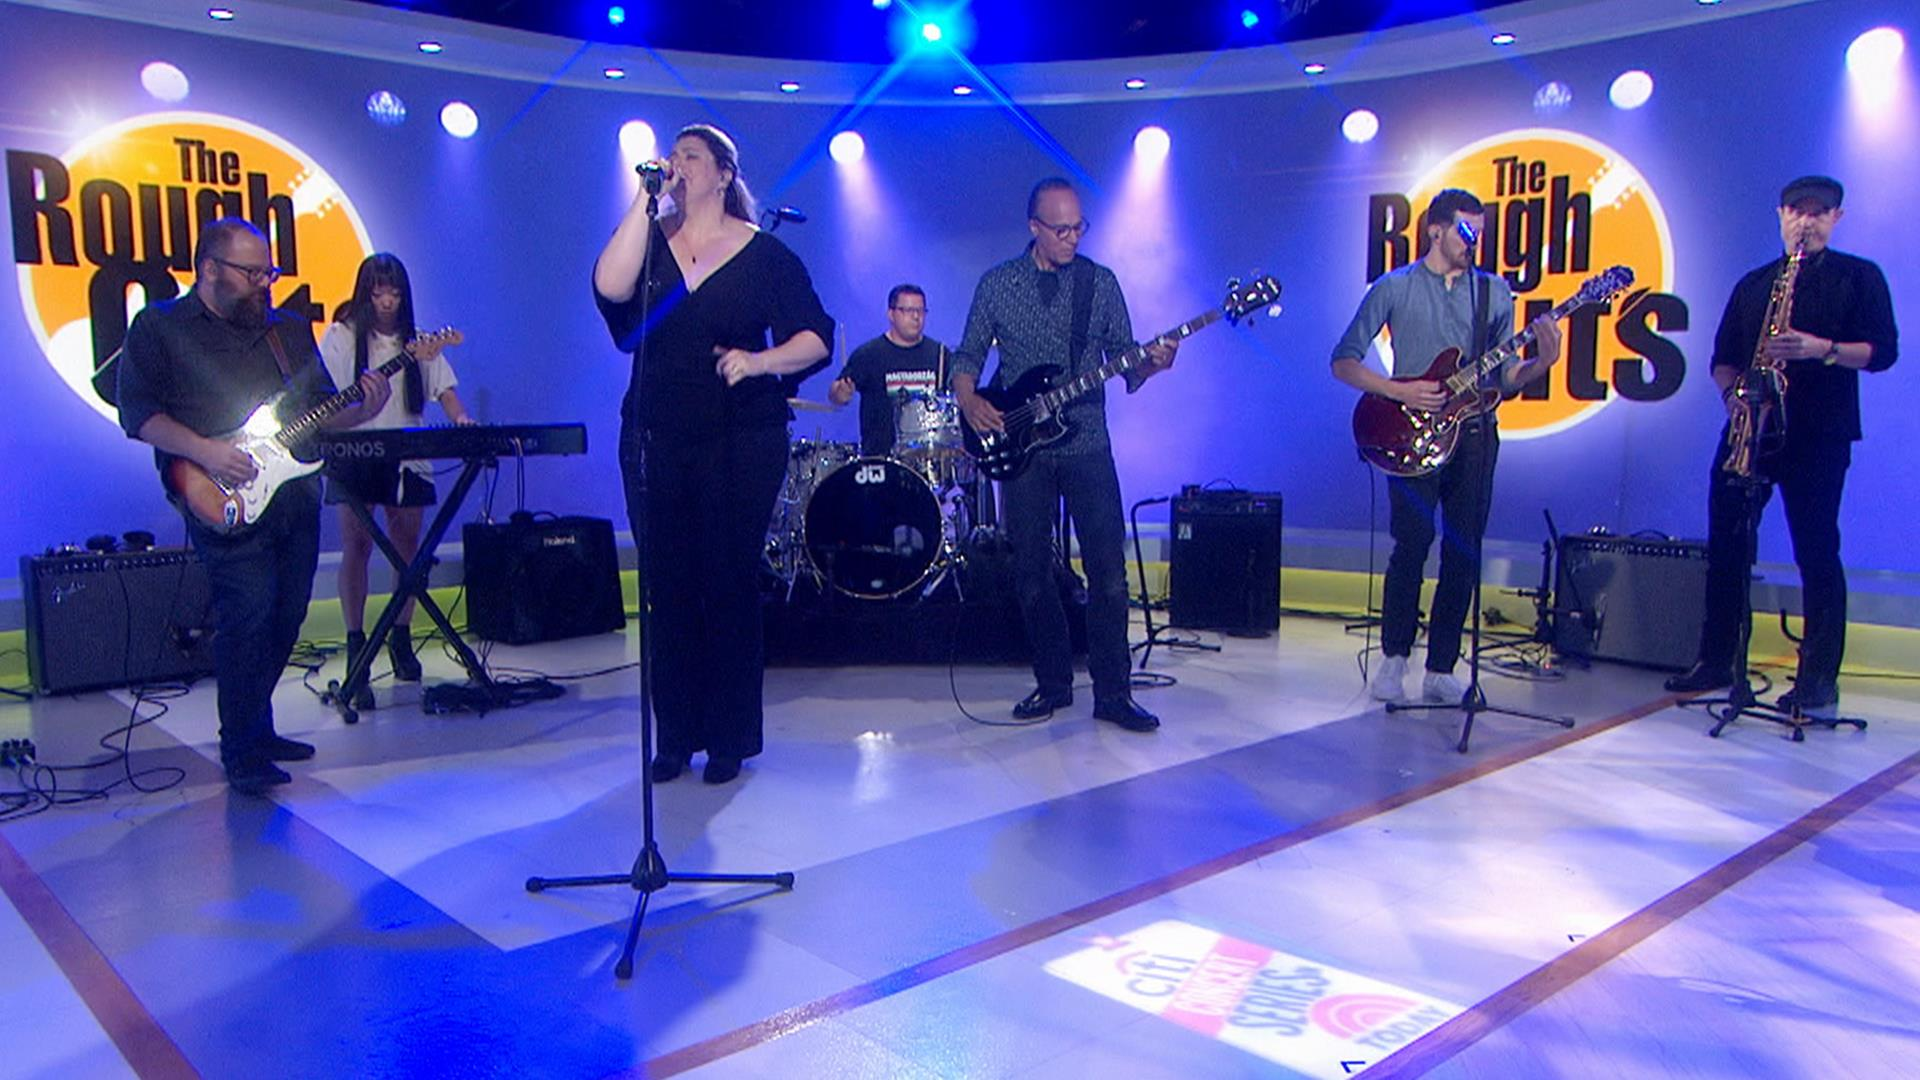 Lester Holt's band, The Rough Cuts, makes its TV debut on TODAY